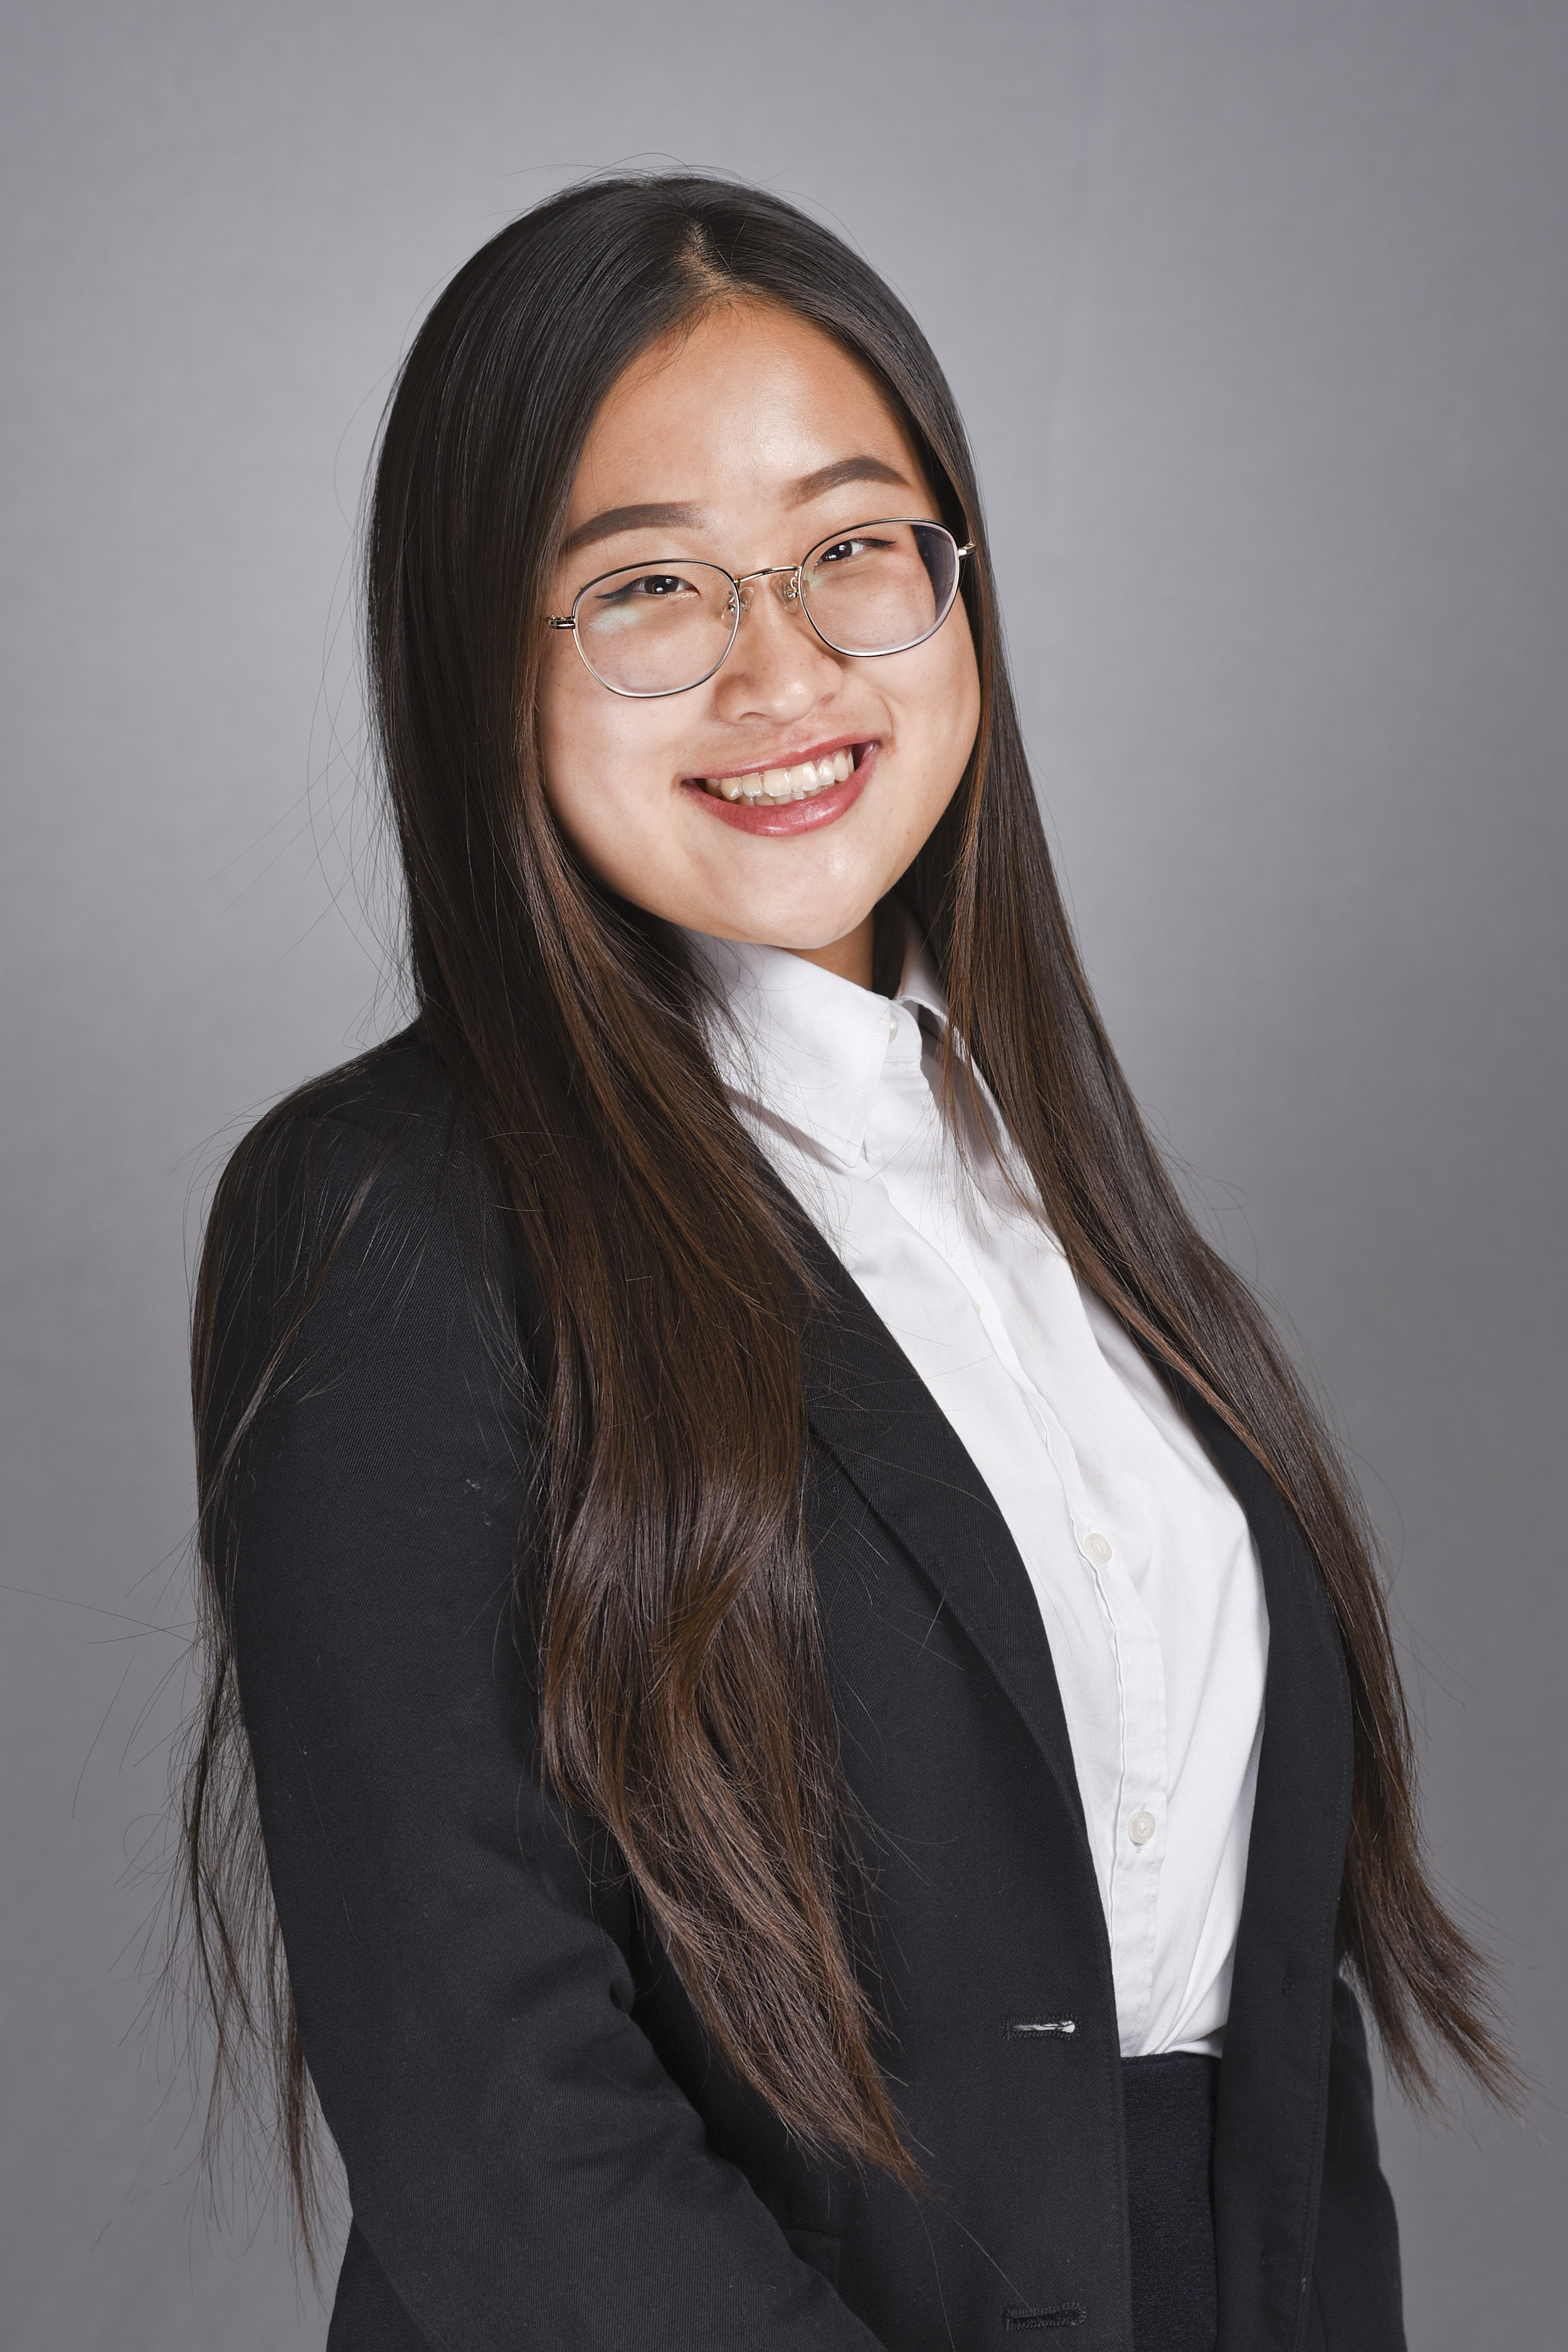 Jenny Yoo, Youth Board Vice President - Hello everyone! My name is Jenny Yoo and I am a senior at Buena Park High School. Some of the things I love doing are meeting new people and trying new things! YLA has allowed me to grow as a person through connecting with different student leaders in the community. This program has given me the oppertunity to truly evaluate what servant membership is.